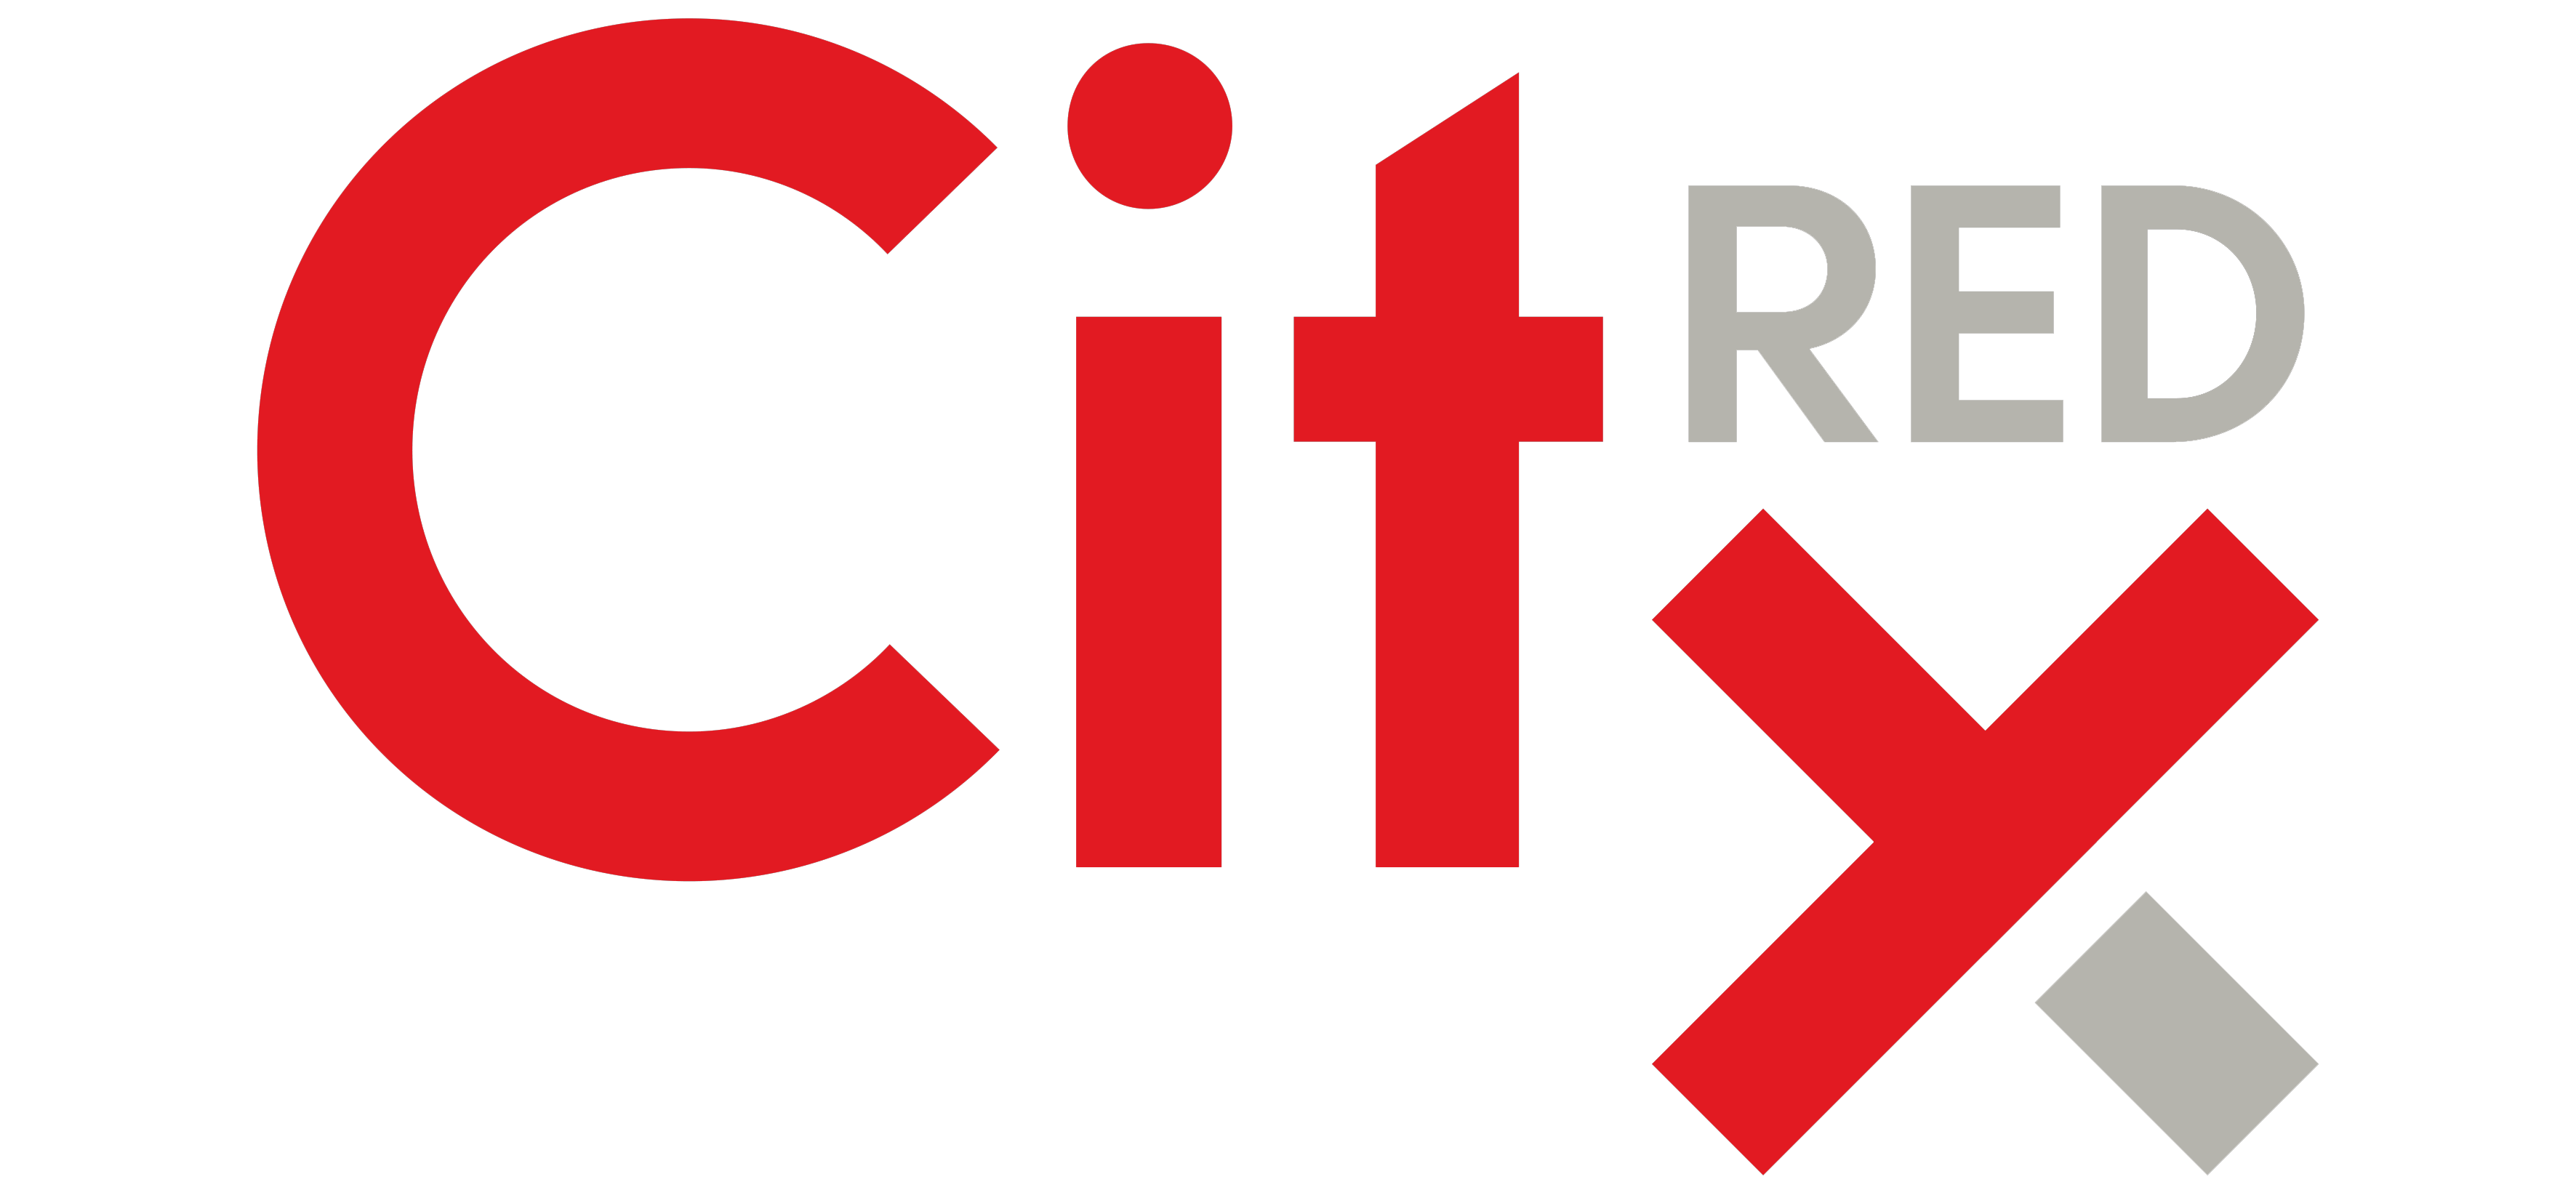 CityRED